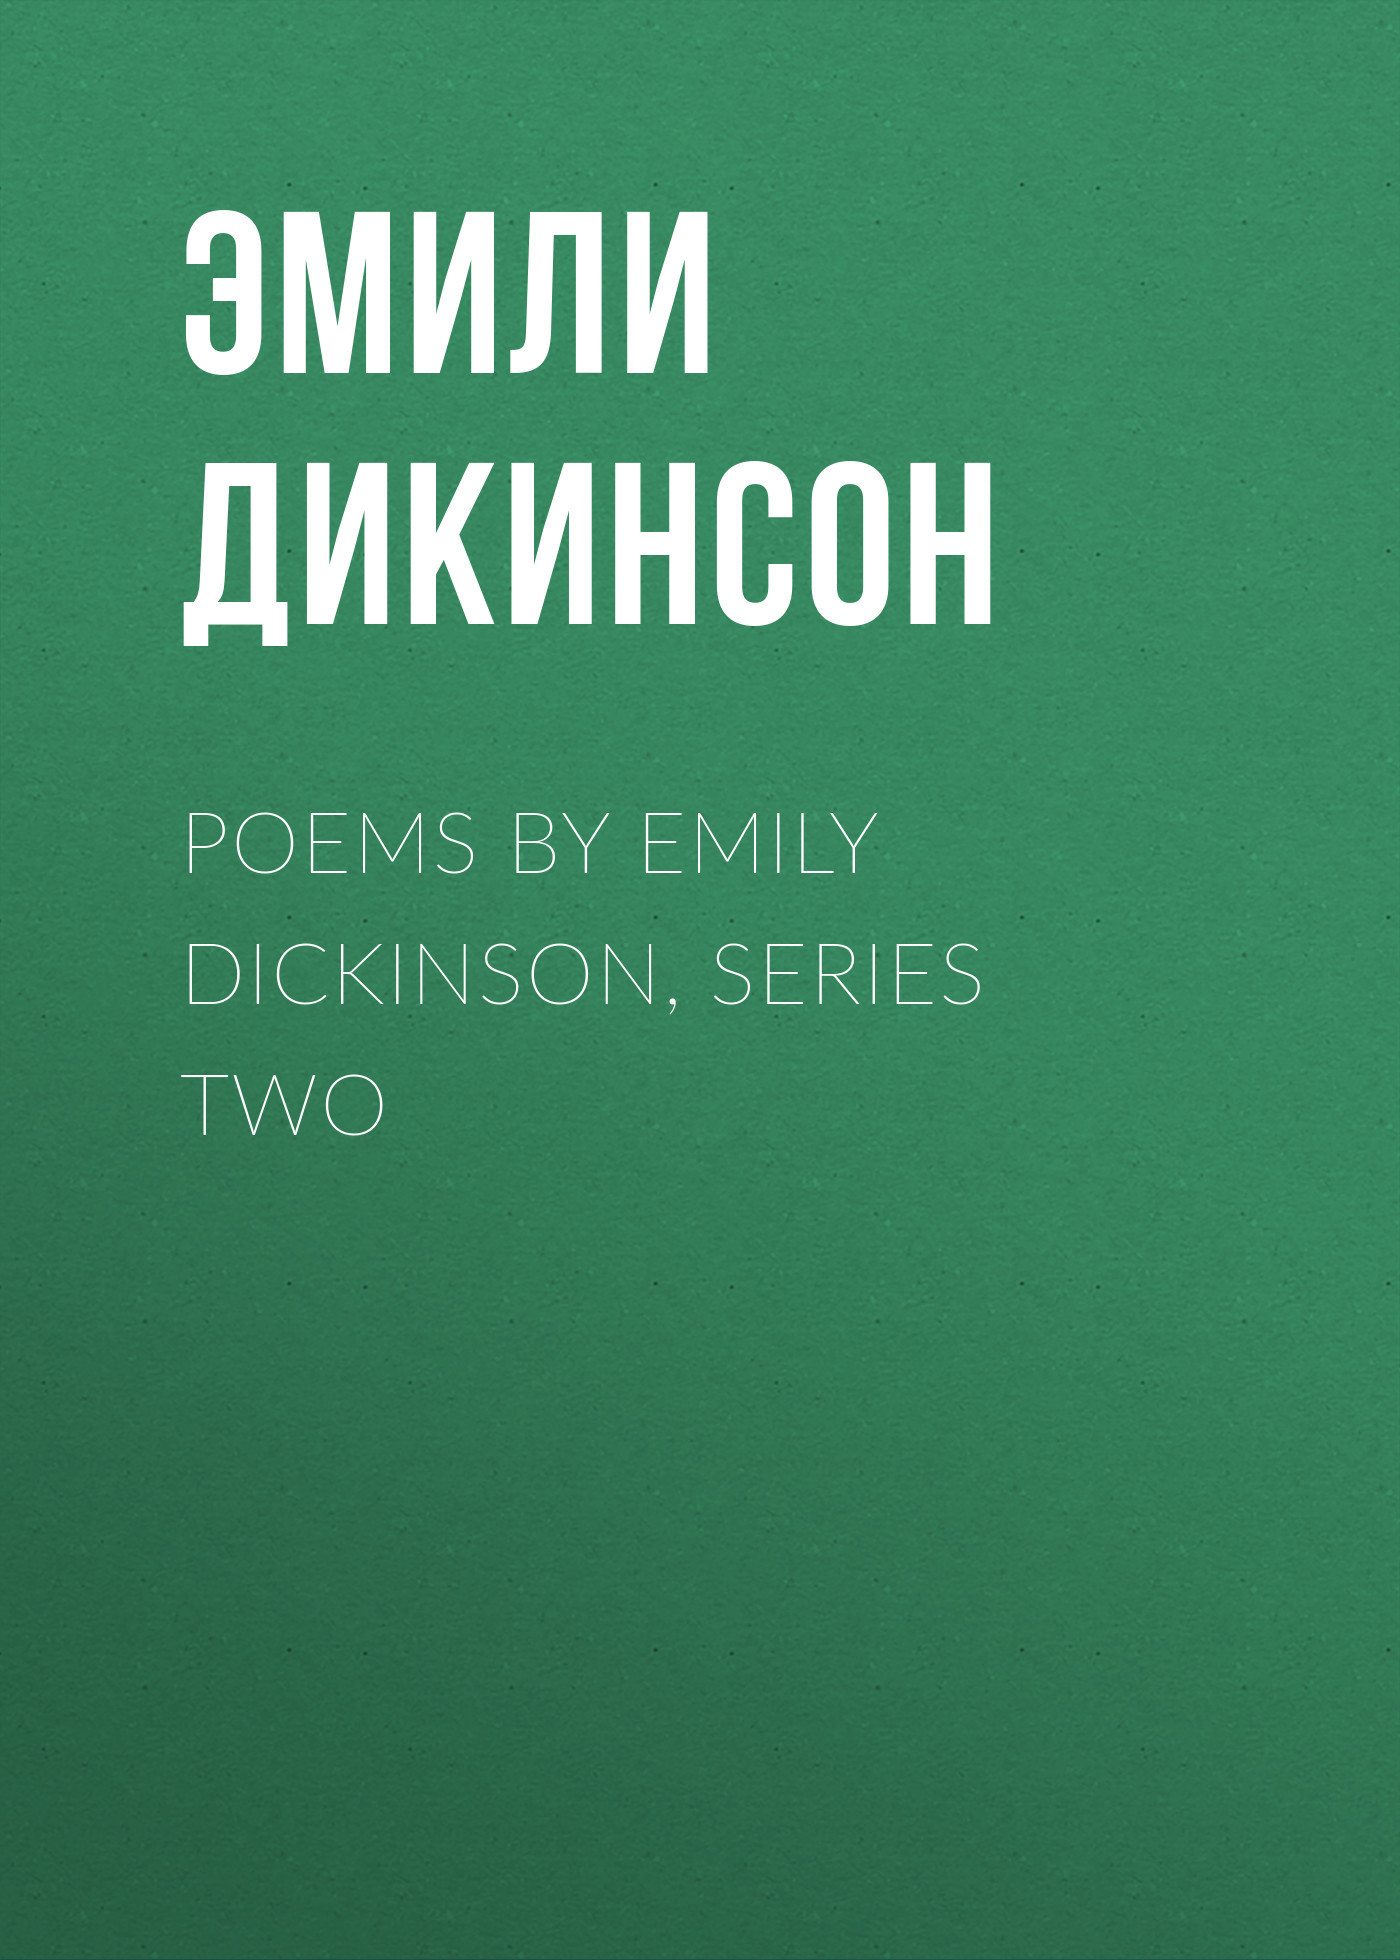 Эмили Дикинсон Poems by Emily Dickinson, Series Two эмили дикинсон дорога в небо перевод с